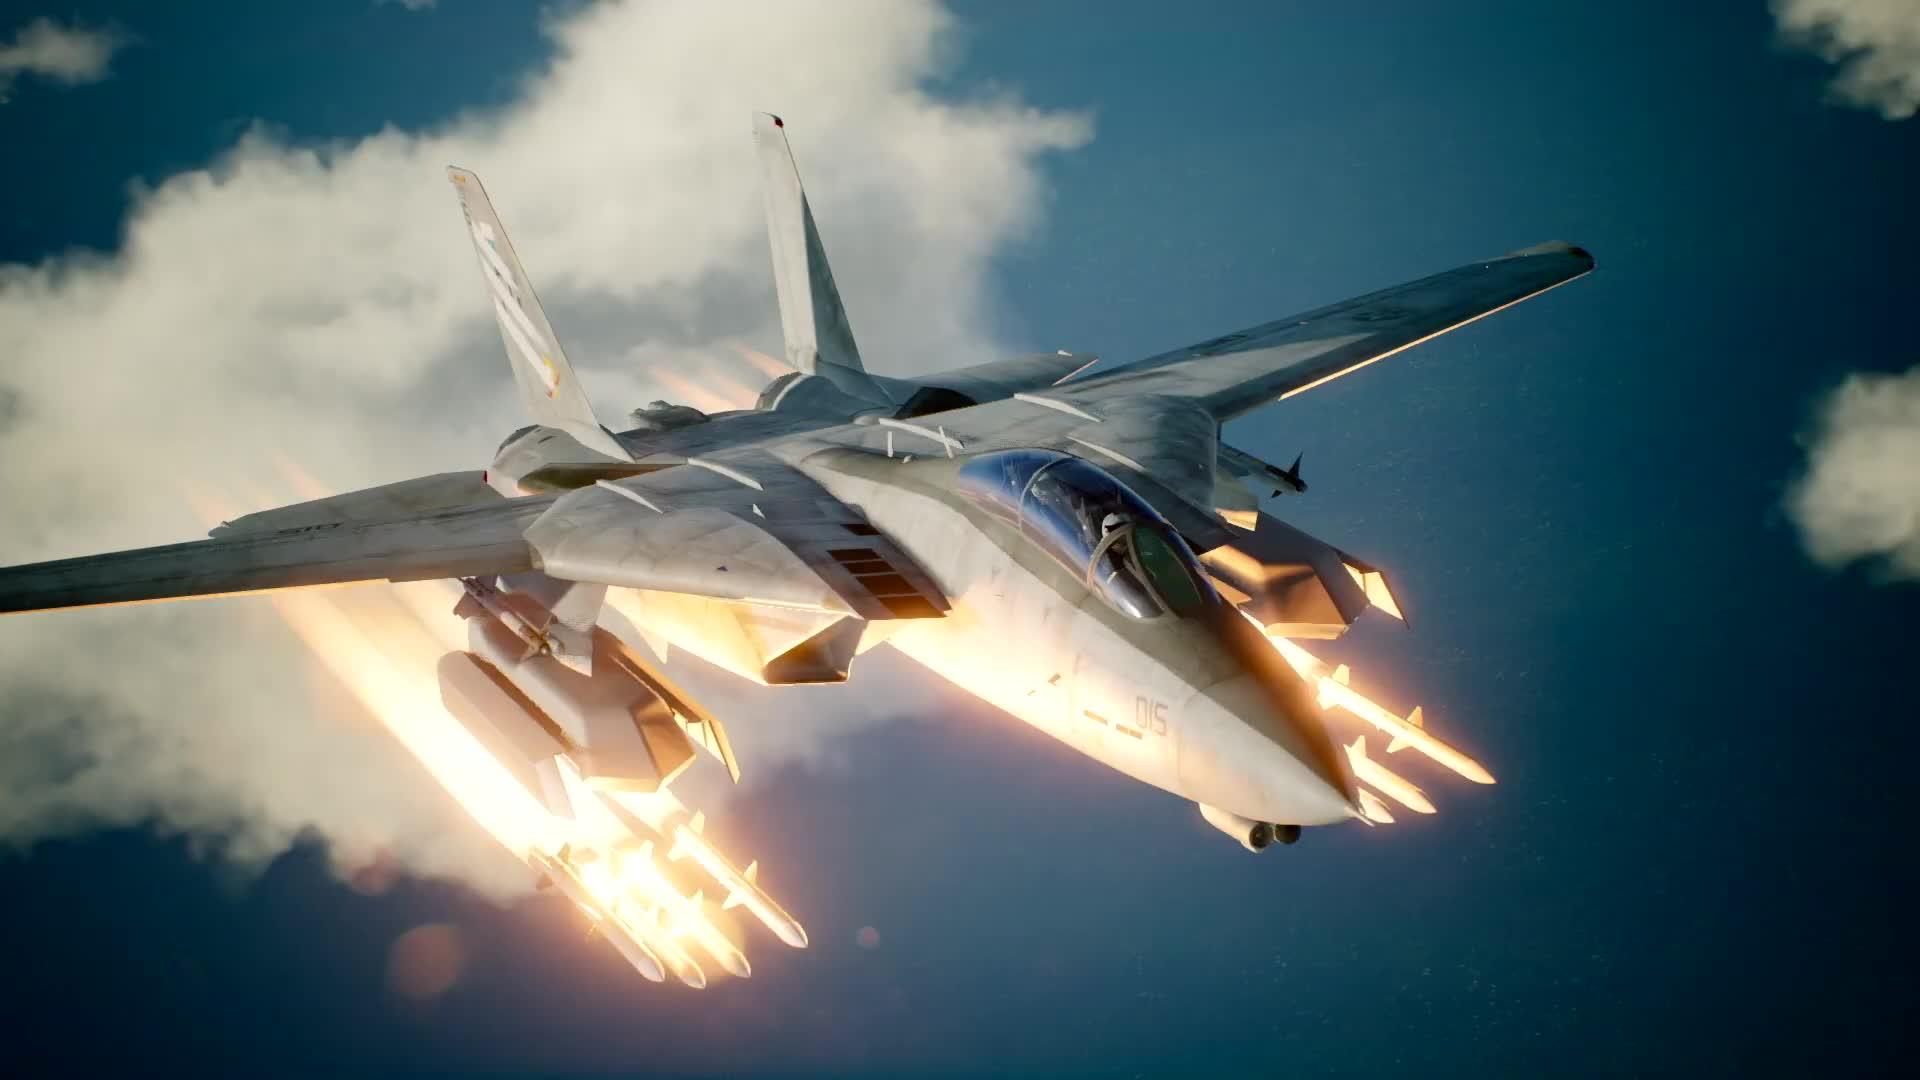 Trailer, Simulation, Bandai Namco, flugsimulation, Ace Combat 7, Ace Combat, Skies Unknown, Ace Combat 7: Skies Unknown